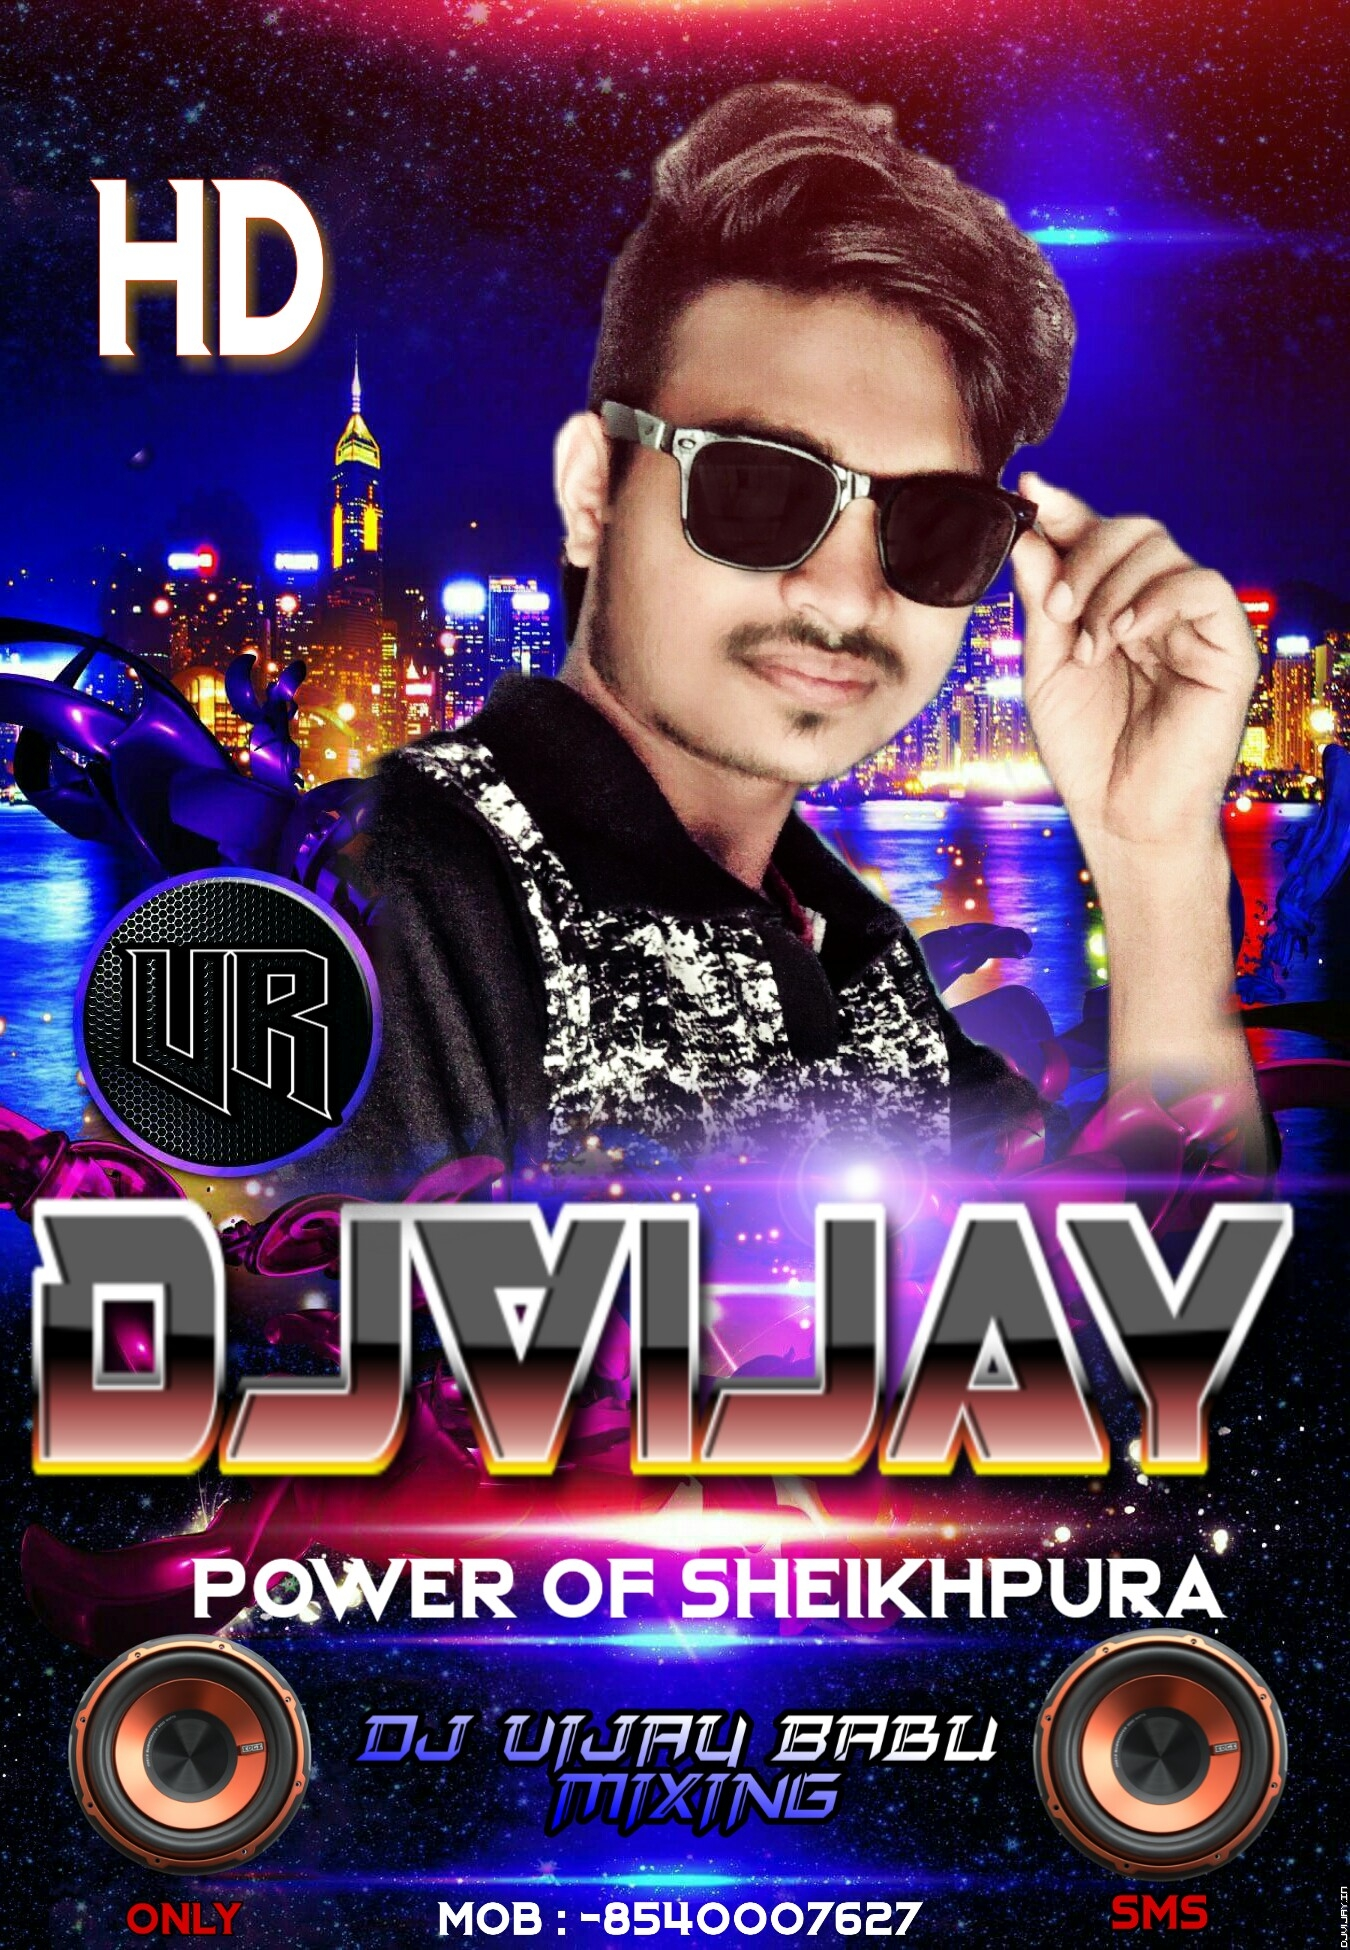 Duppta Sarak Raha Hai Hindi Love Song Mix Dj Vijay.mp3